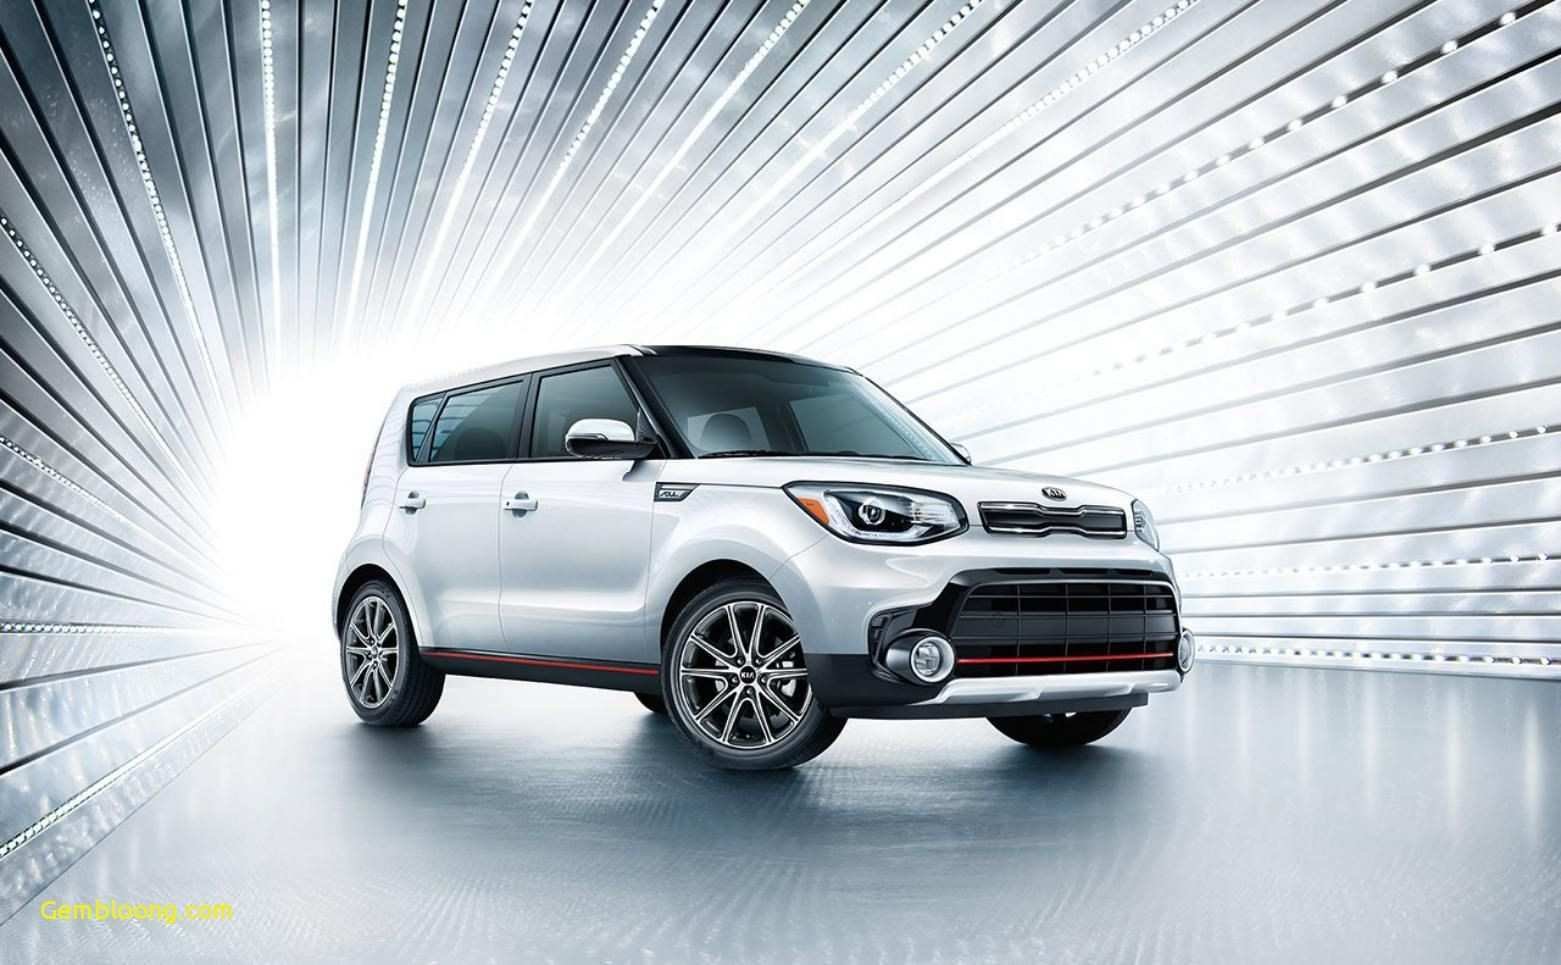 82 The Kia Trailster 2019 Price and Review with Kia Trailster 2019